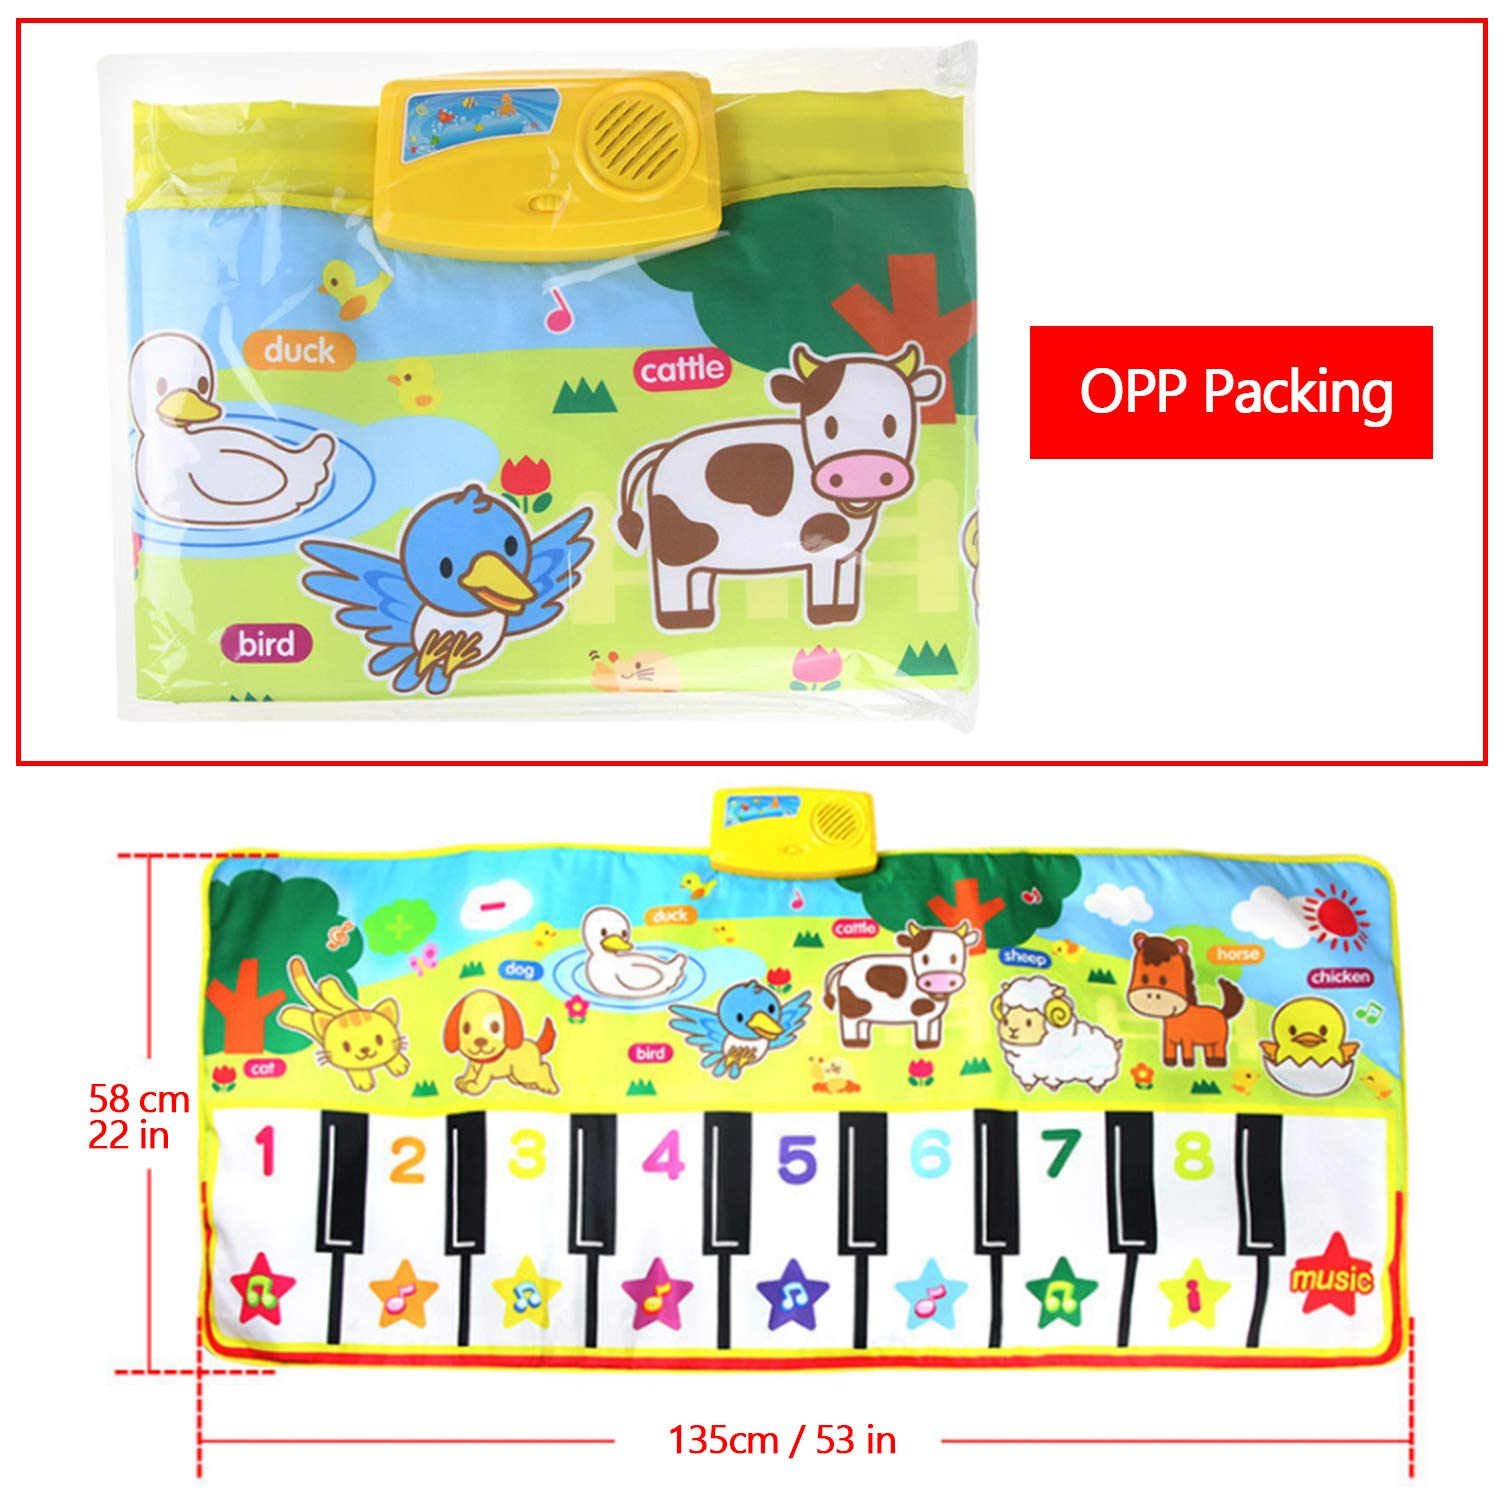 Kids Children Musical Mats, Musical Piano Dance Mat, Animal Carpet Blanket Touch Play Keyboard Playmat with 8 Animals Sounds 16 Musical Keys Educational Toy for Boys Girls Baby Toddler (135 58 cm) by ALANGDUO